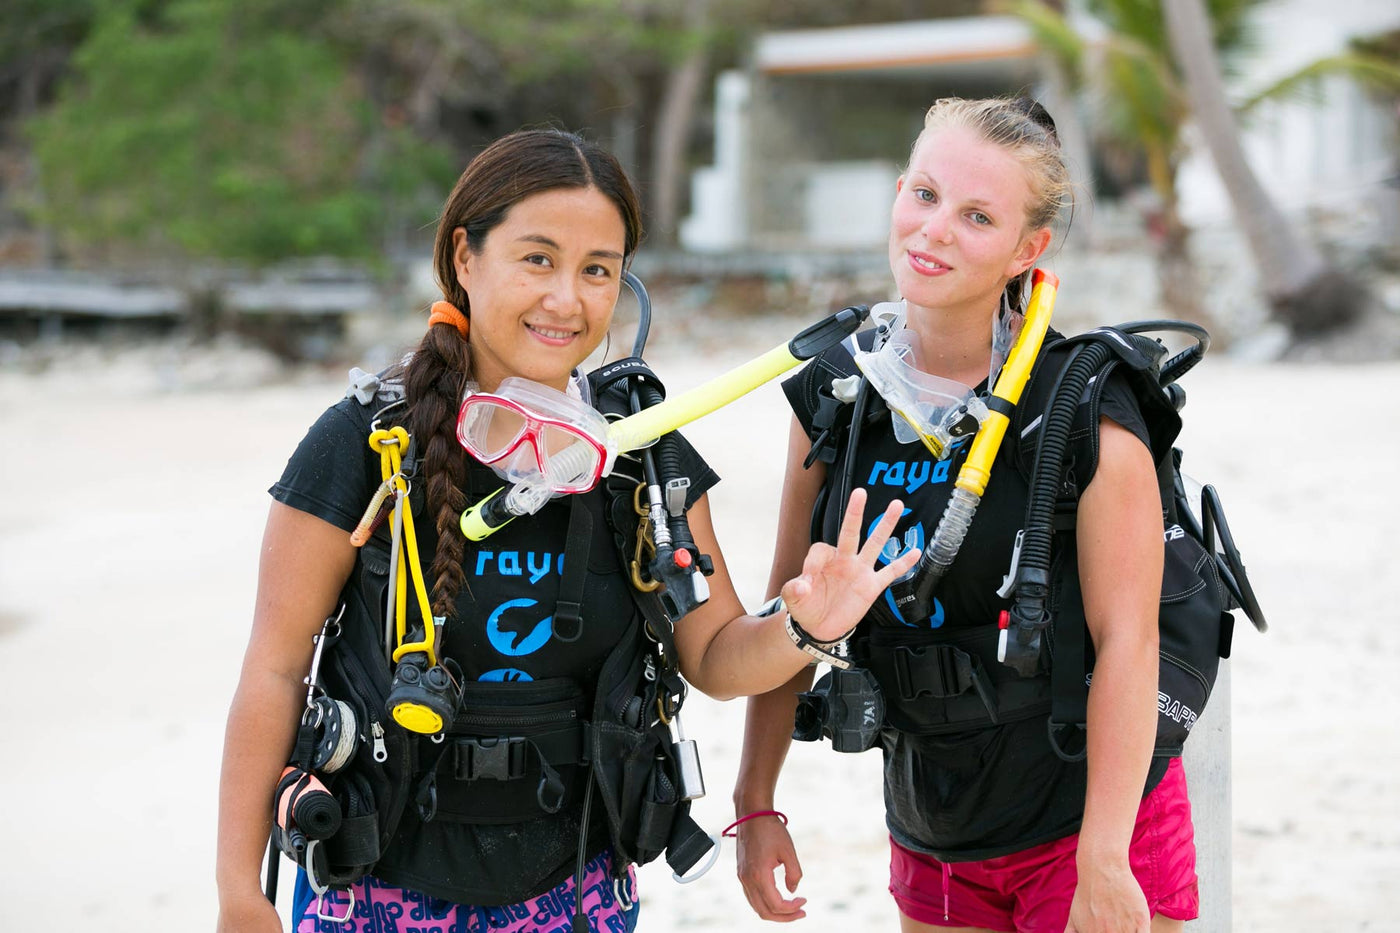 PADI Diving Courses from beginner to professional levels